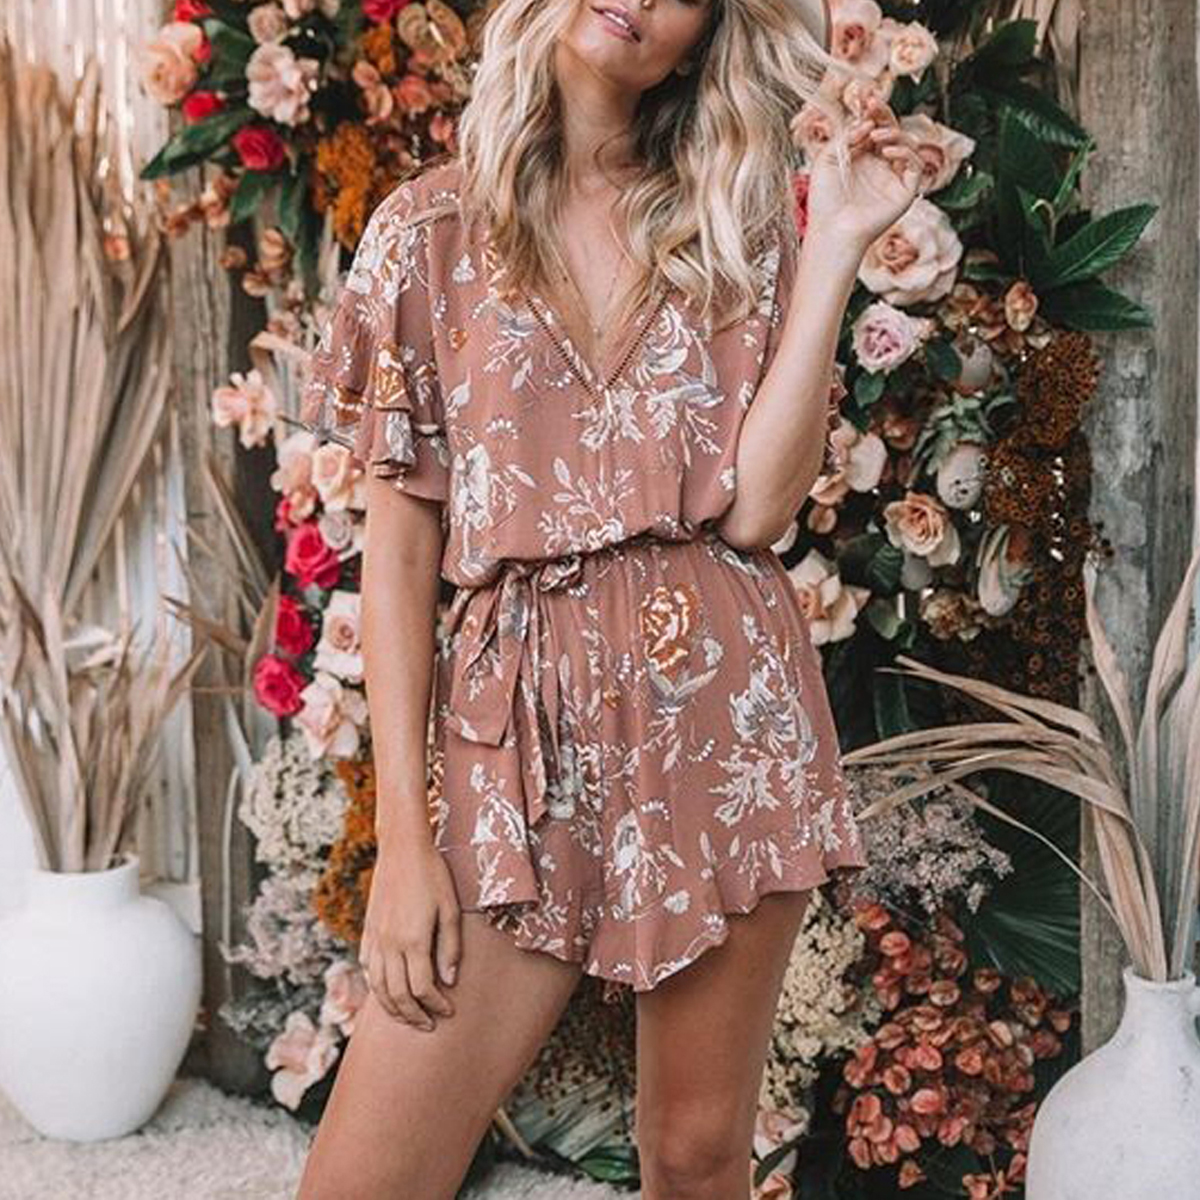 ffab4d2256 Jastie Boho Patchwork Lace V-Neck Women Playsuit Gypsy Style Floral printed  Romper Casual Beach Short Jumpsuit Female Overalls